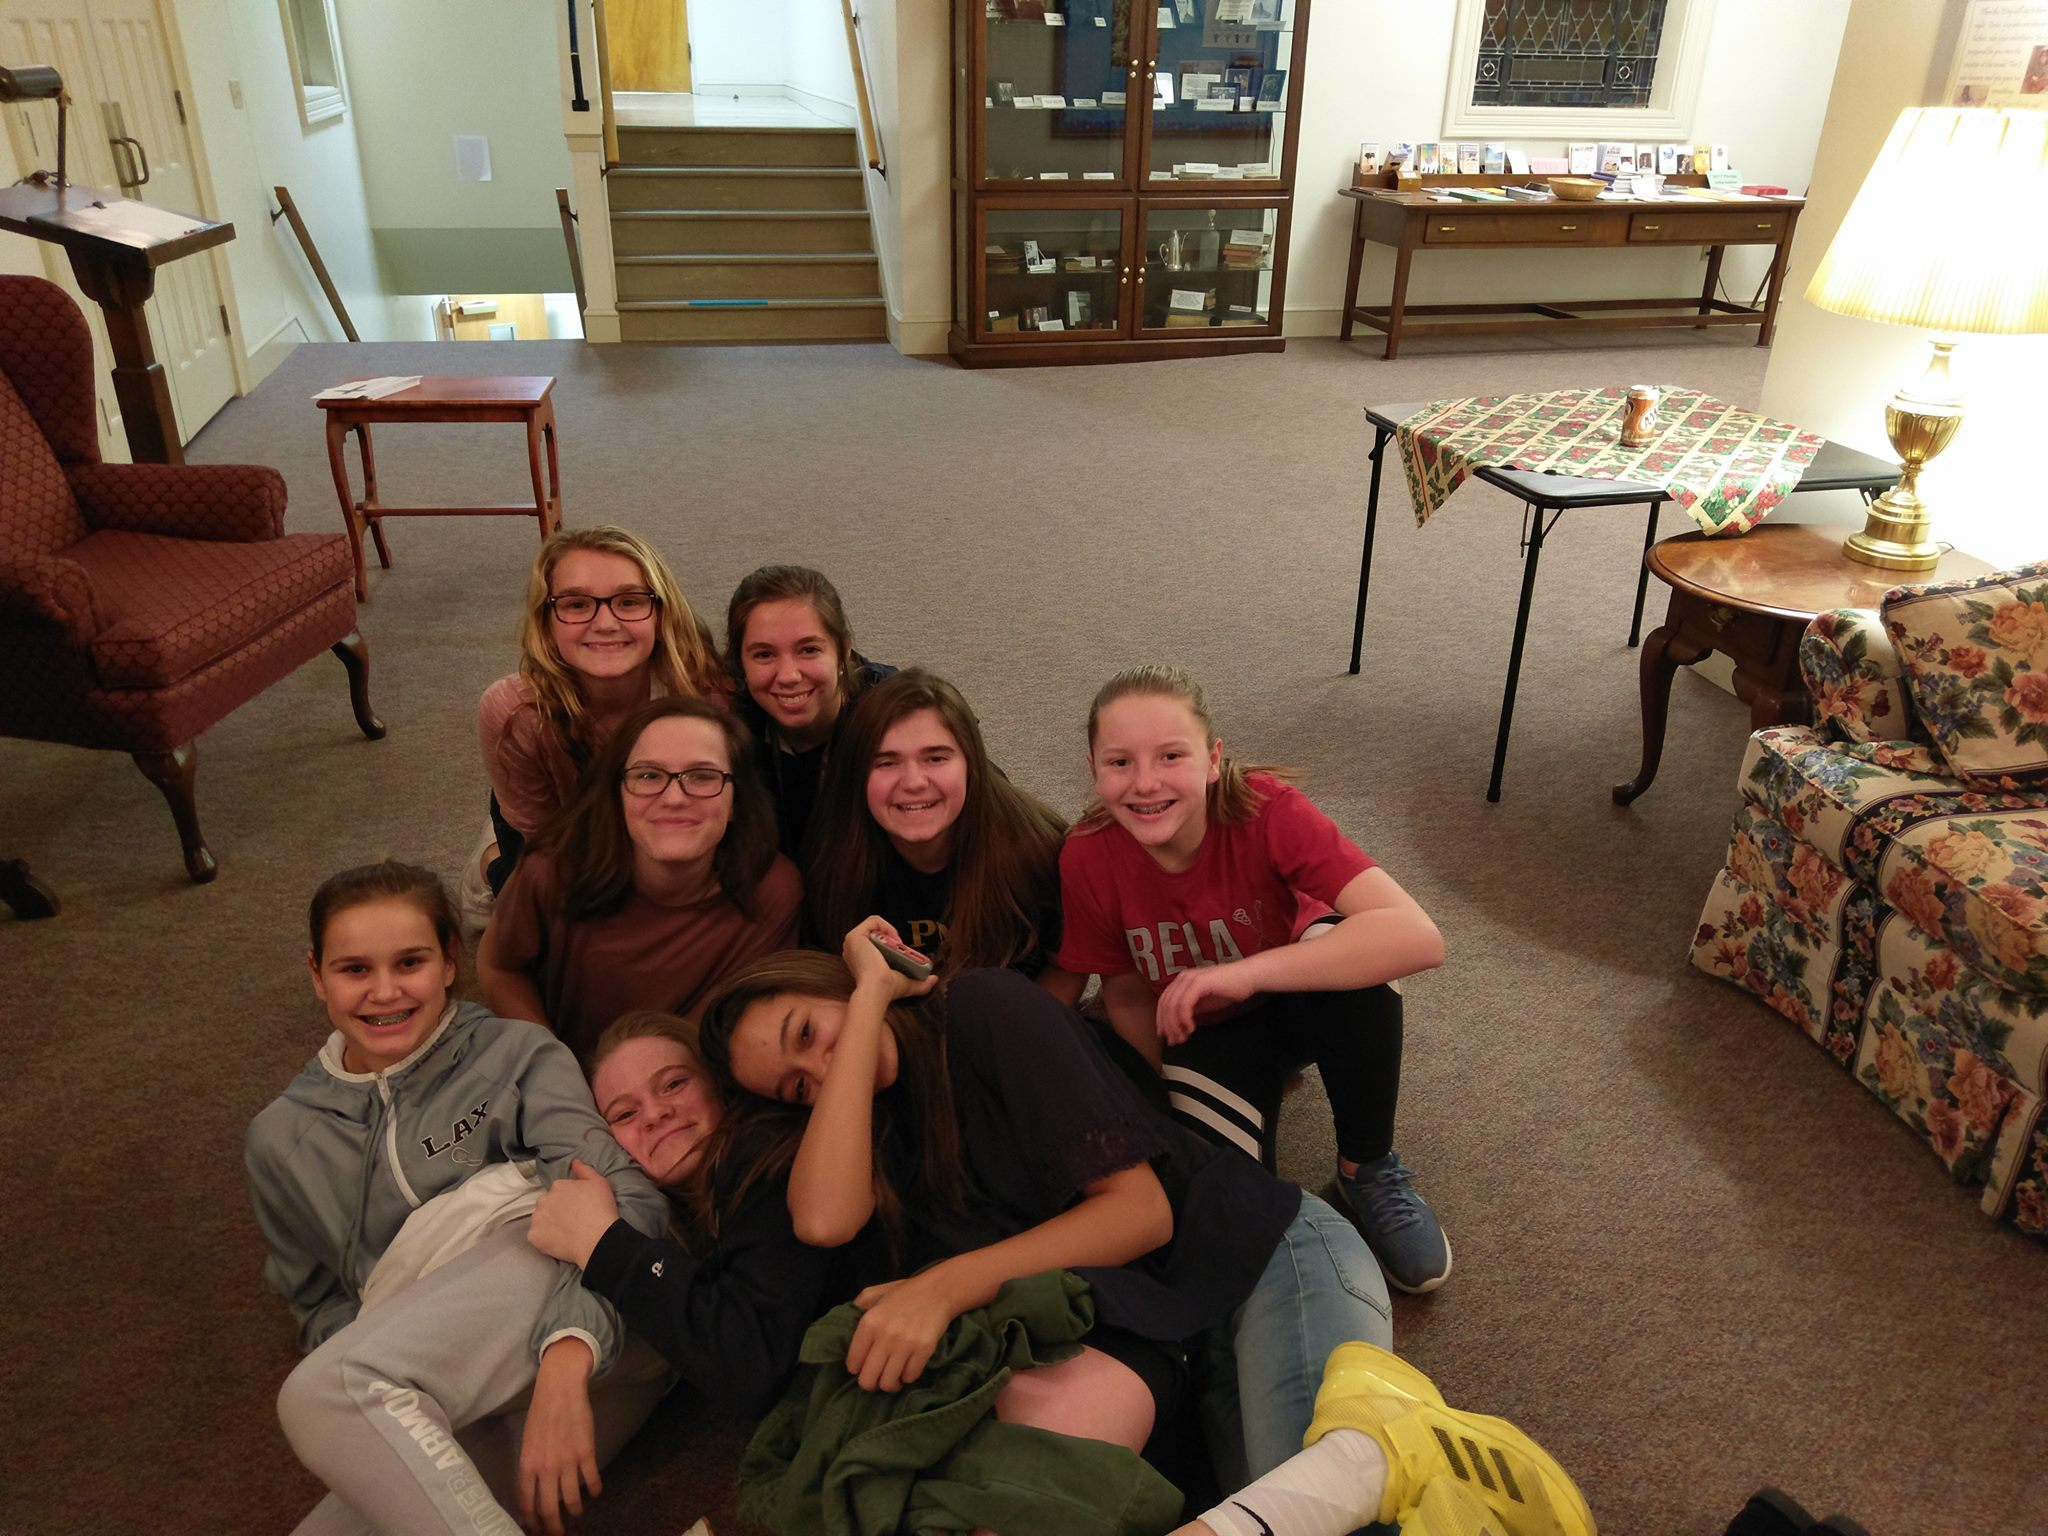 LISA (BACK MIDDLE) IS CURRENTLY A HIGH SCHOOL SENIOR AT PENN MANOR AND COMES EVERY WEEK TO LEAD A SMALL GROUP OF GIRLS!